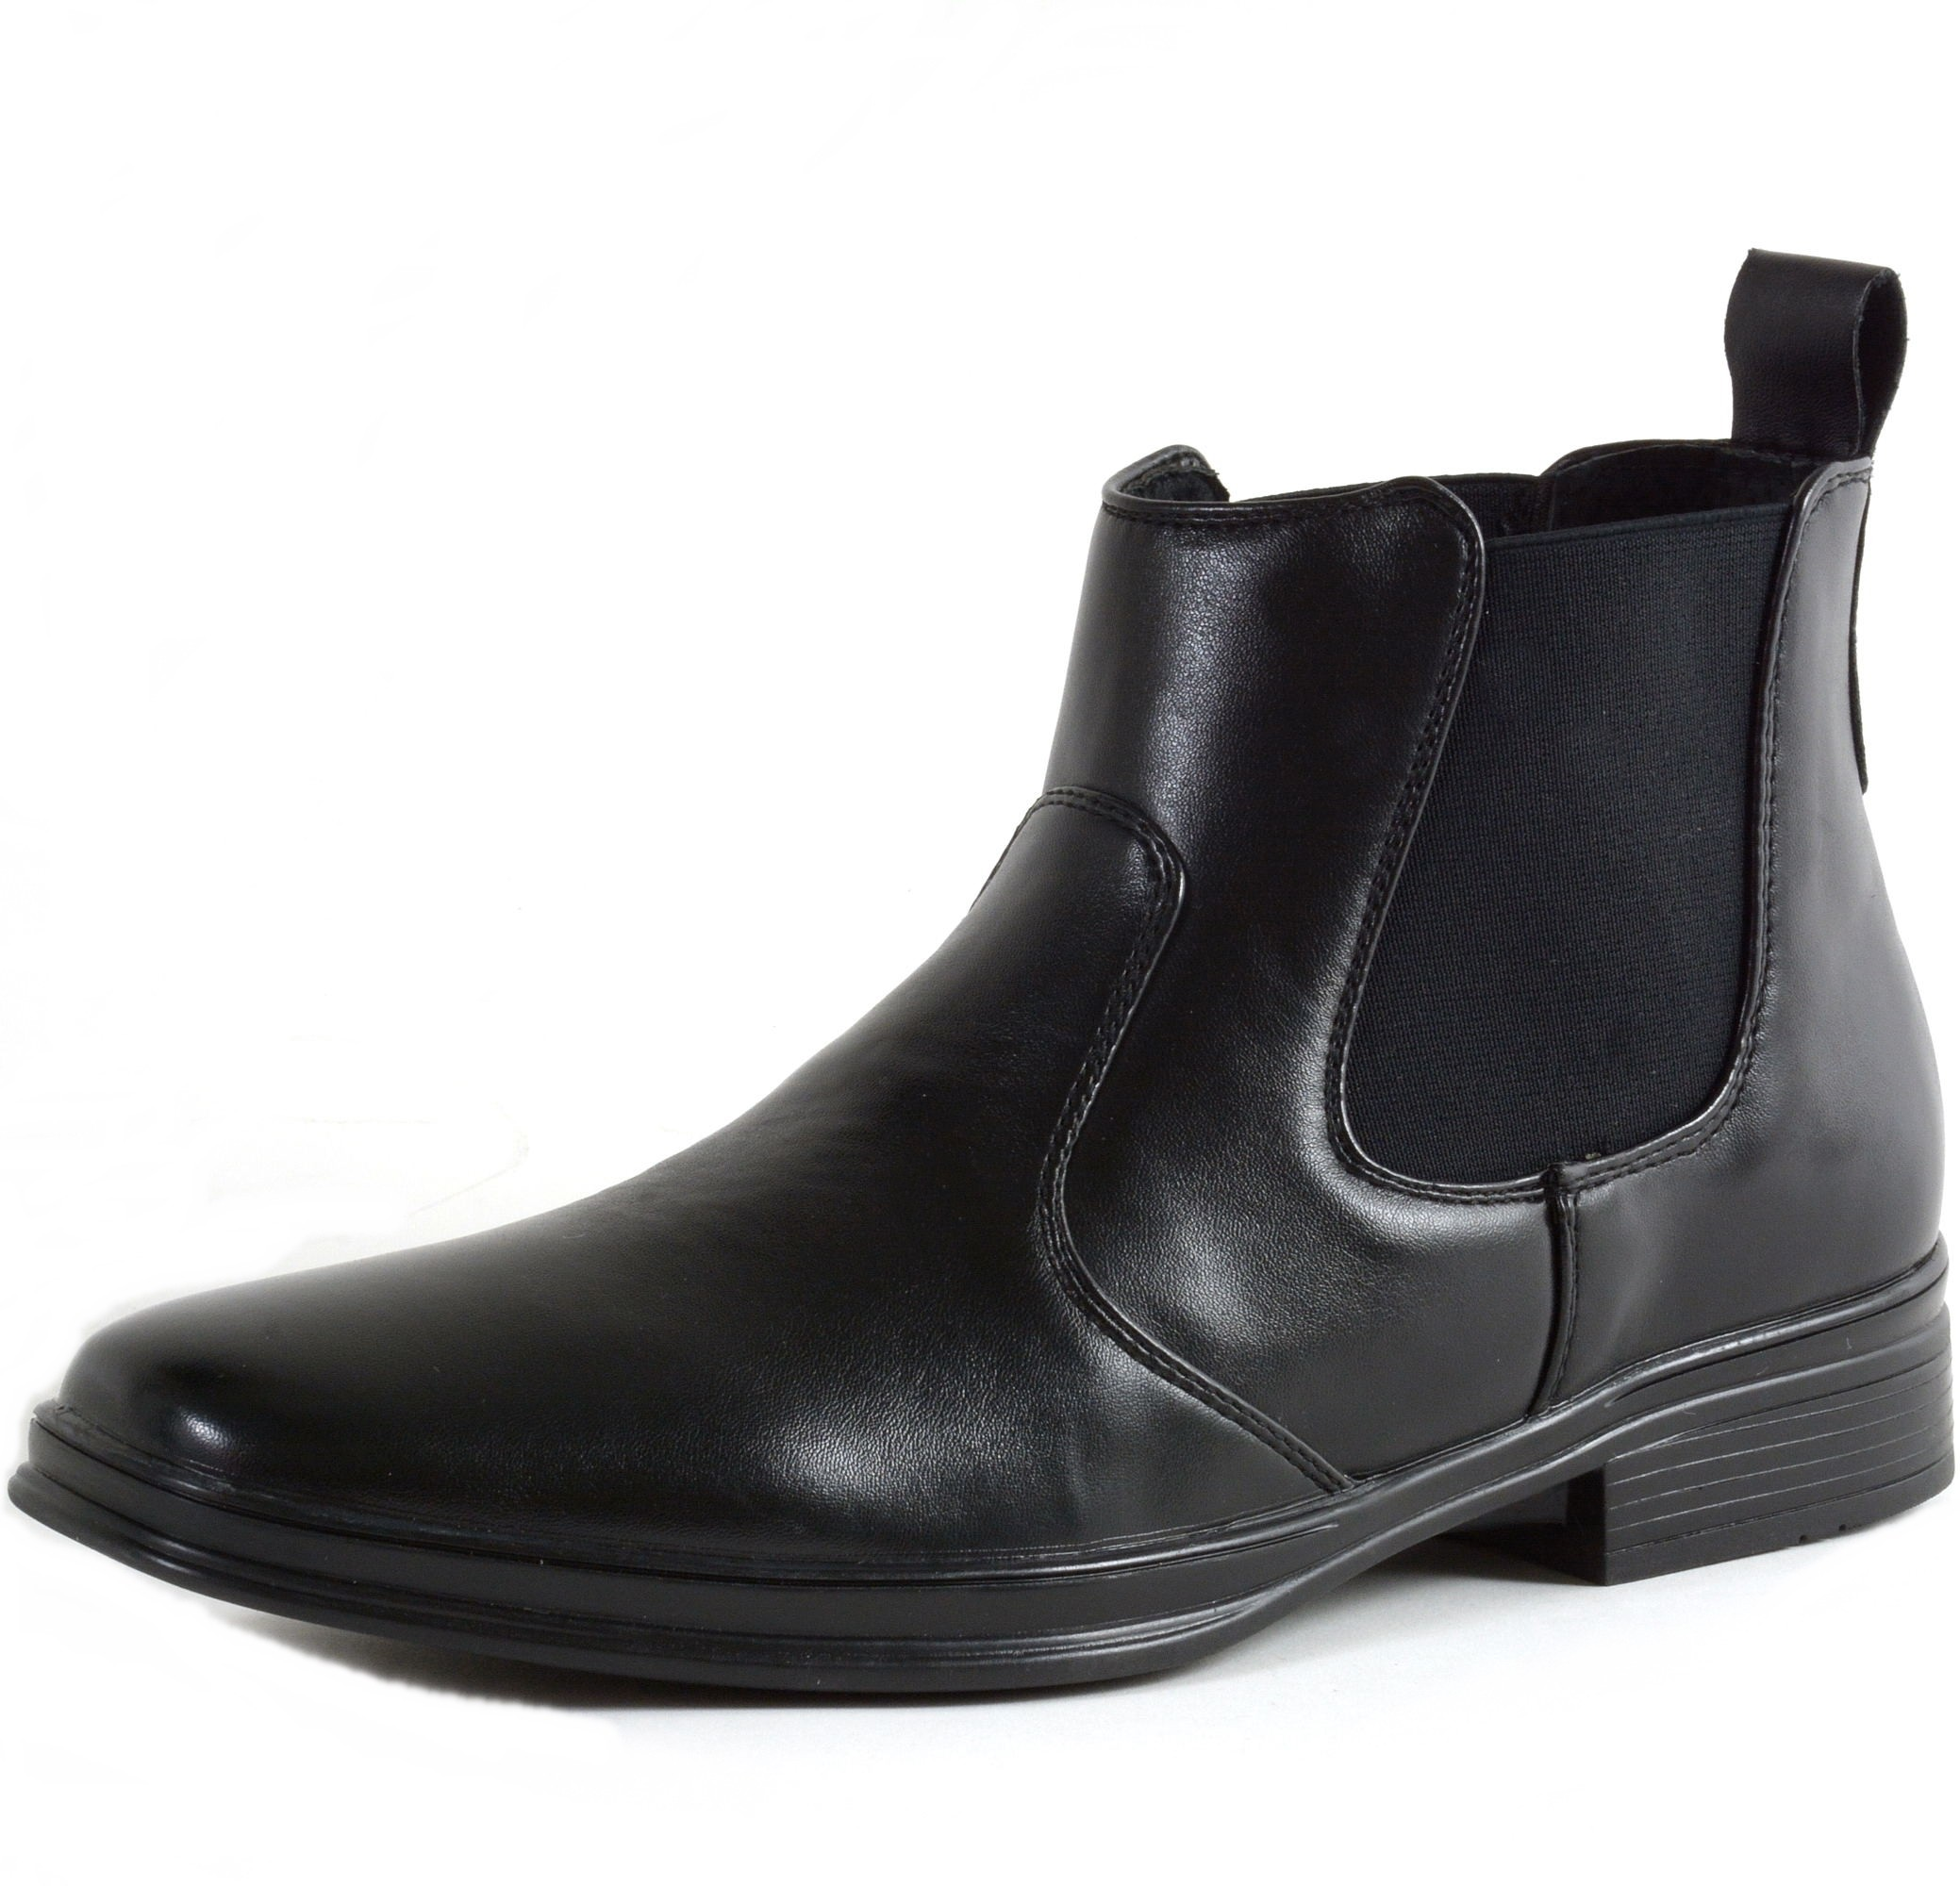 Chelsea boots, which are ankle-high and elastic-sided, can help make any woman look her best. From black leather to tan suede, from low or high heeled to flat, we have the best varieties and styles of women's Chelsea boots.